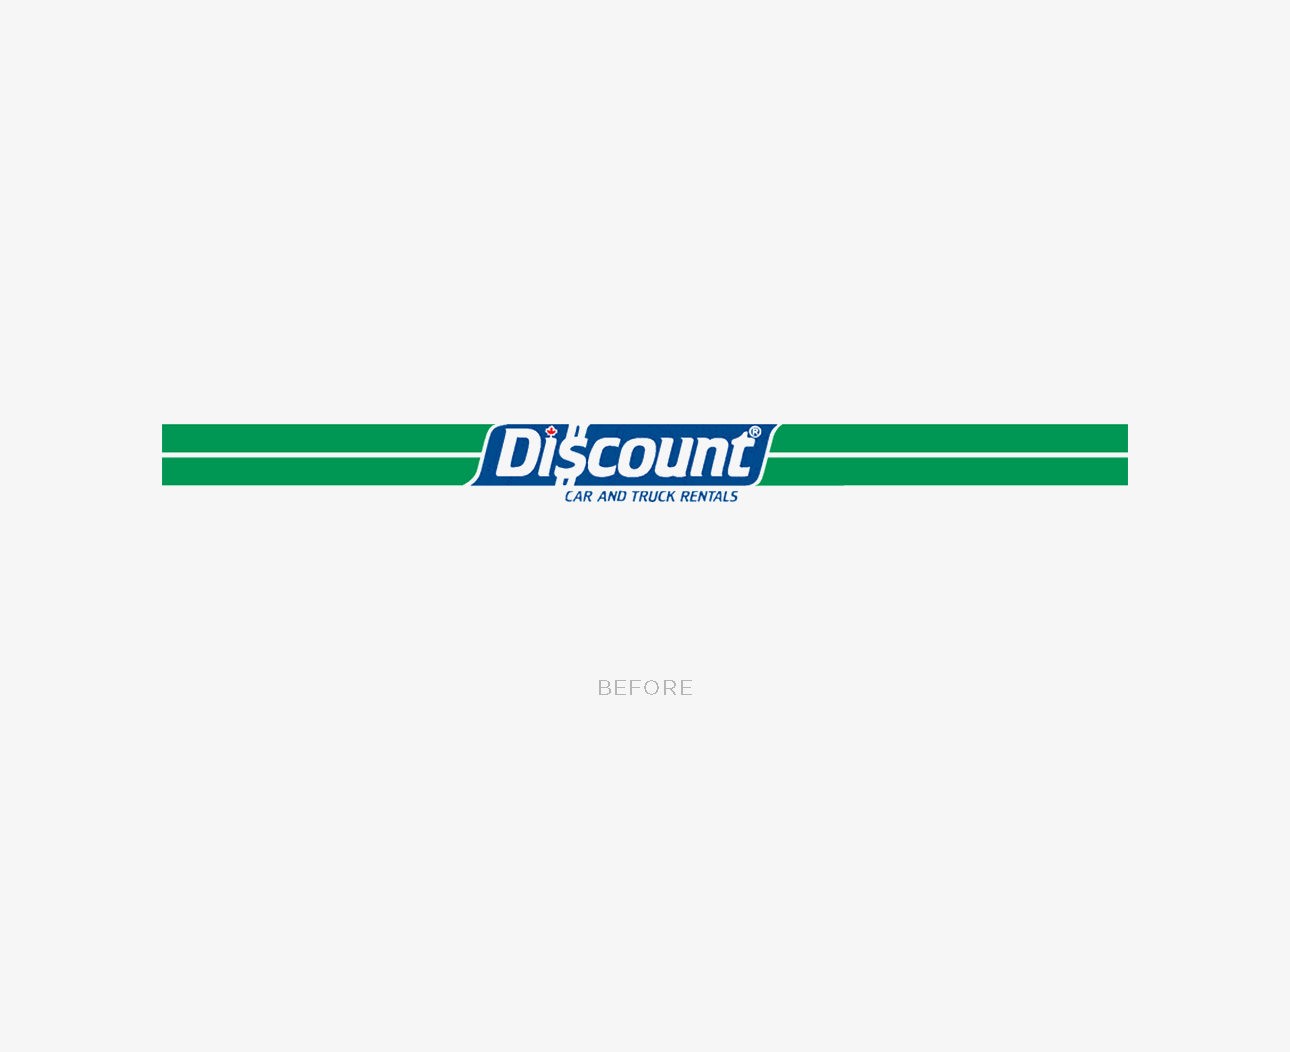 Discount brand image before